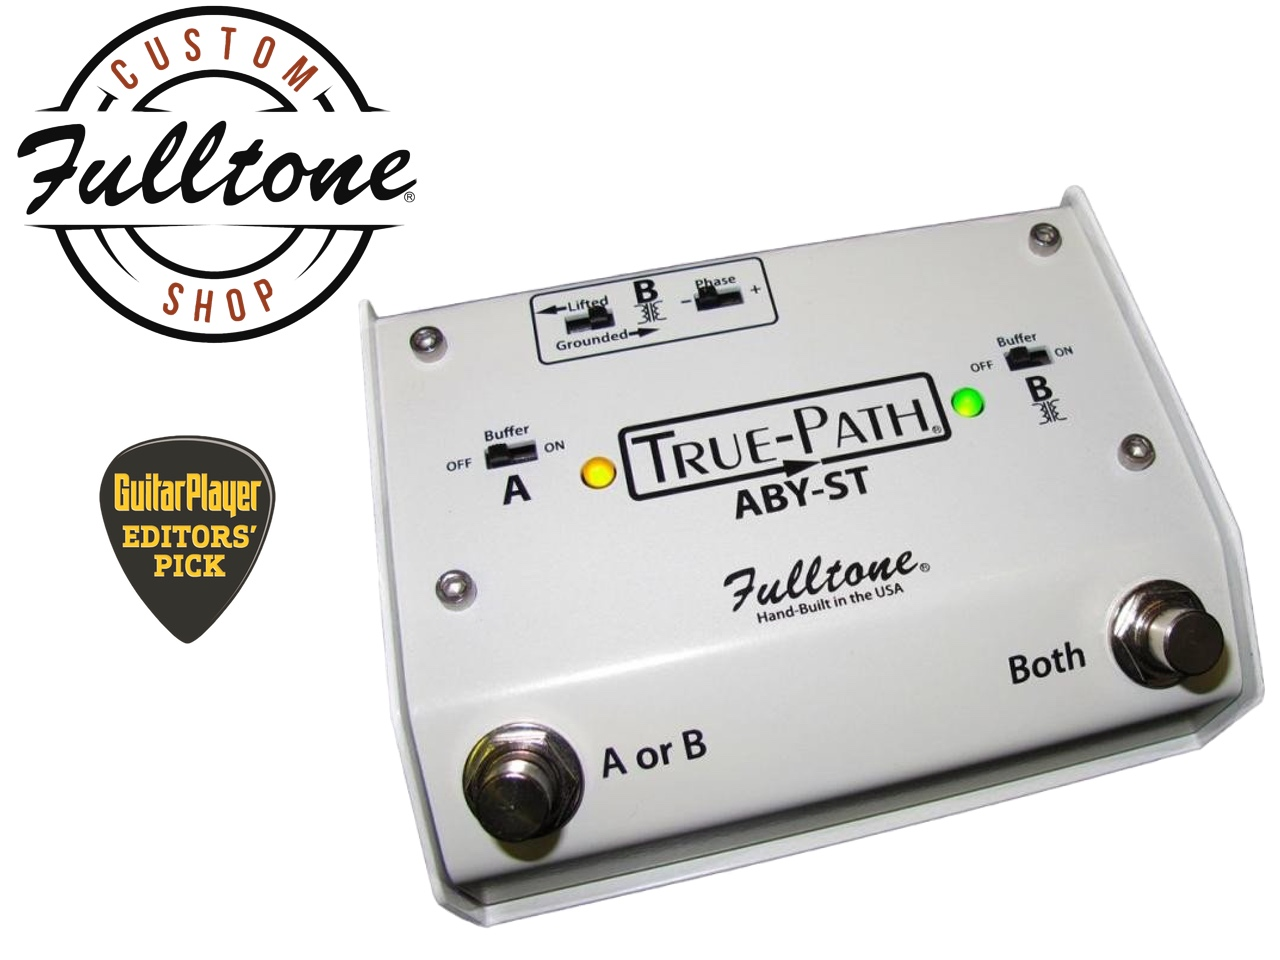 Fulltone Musical Products, Inc. | pedals | True-Path ABY-ST on